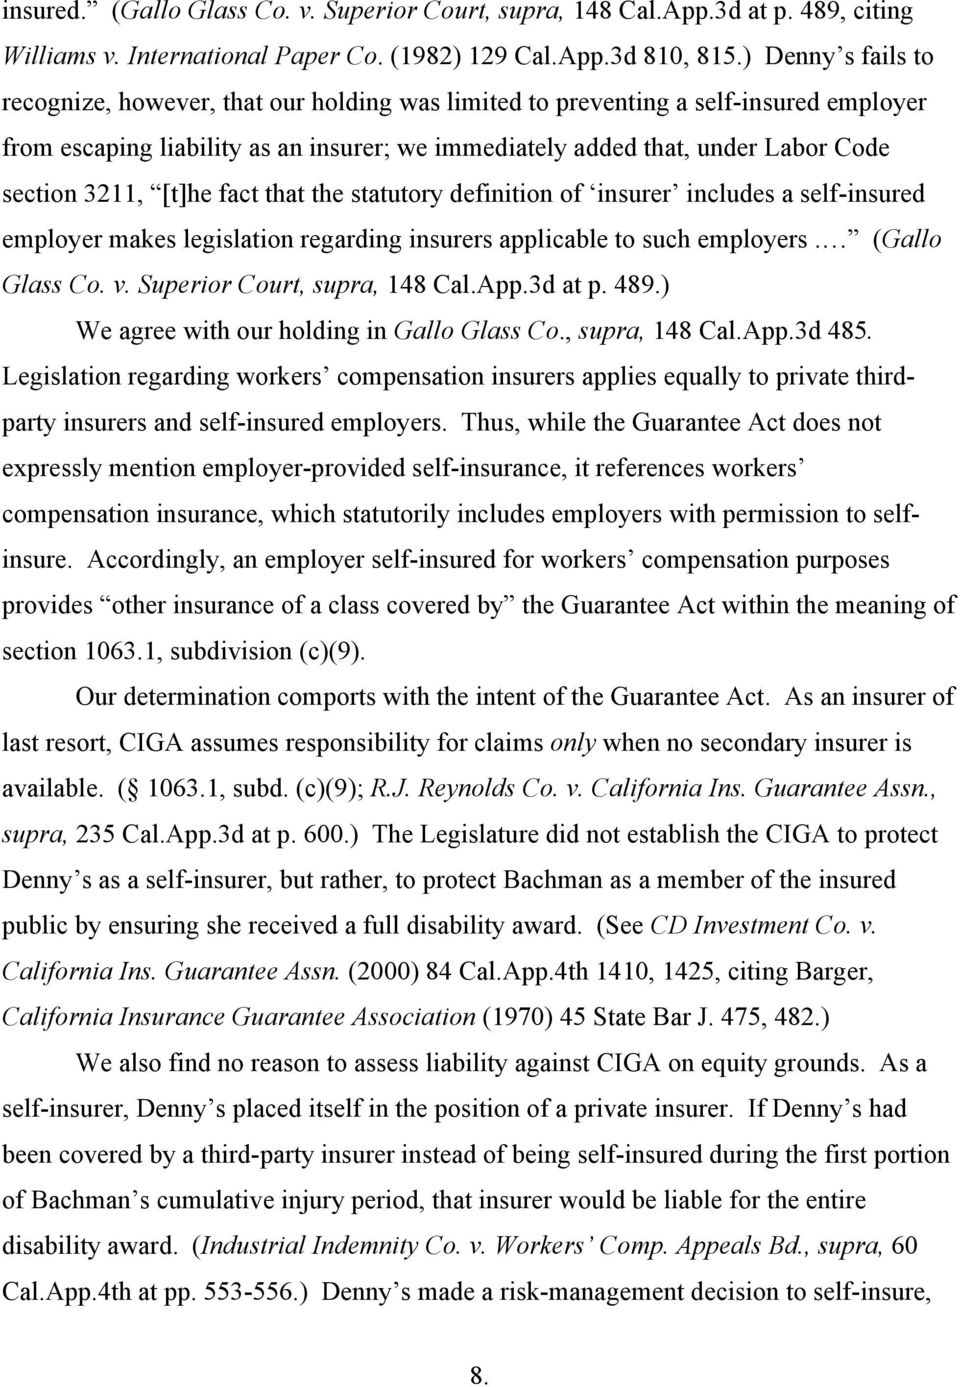 3211, [t]he fact that the statutory definition of insurer includes a self-insured employer makes legislation regarding insurers applicable to such employers. (Gallo Glass Co. v.